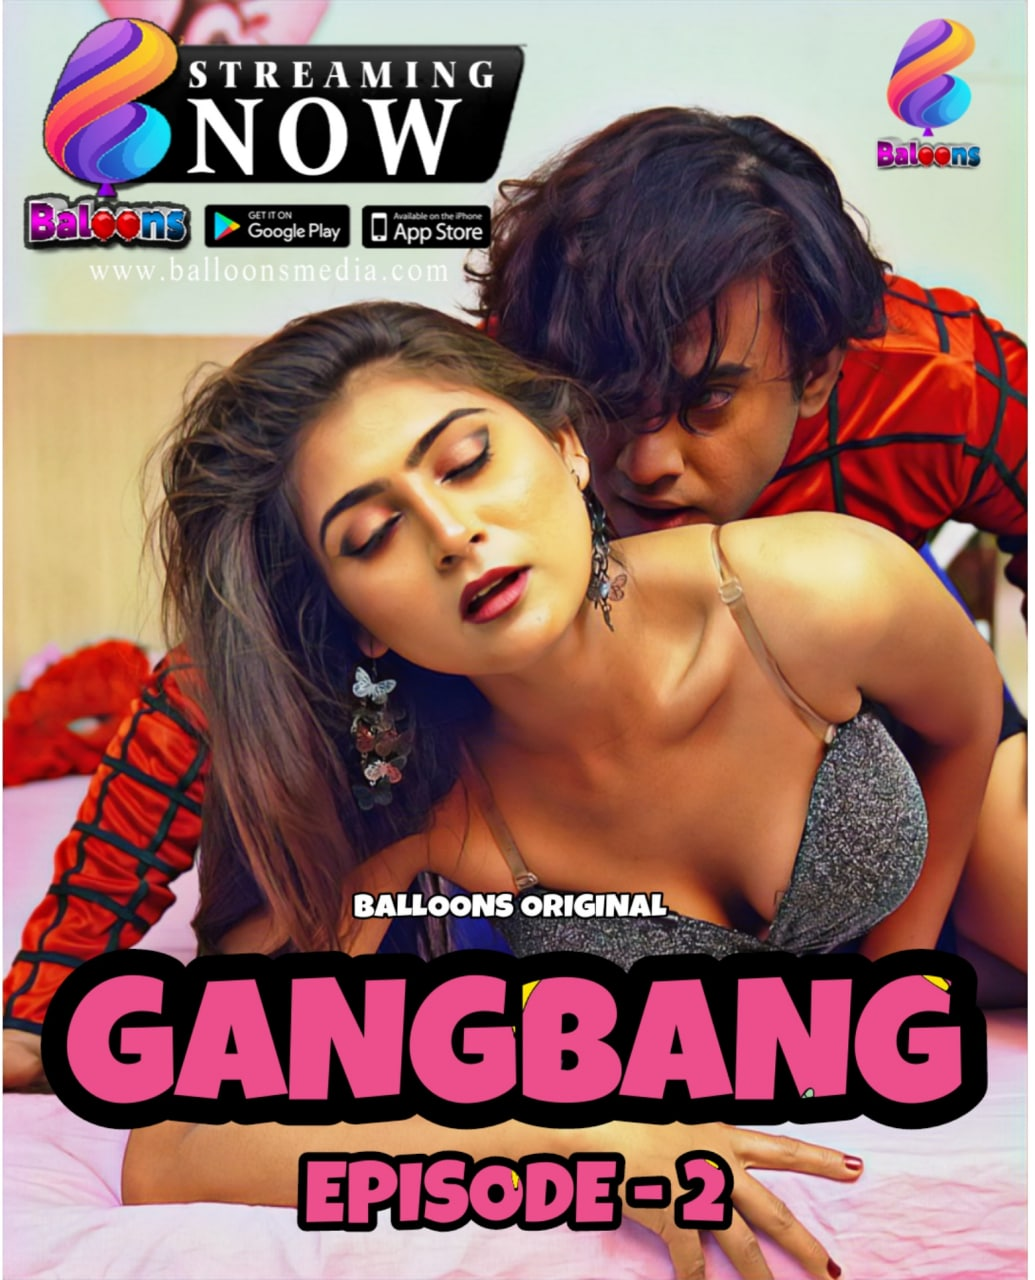 Gang Bang 2020 Balloons Hindi S01E02 Hot Web Series 720p HDRip 250MB Download & Watch Online